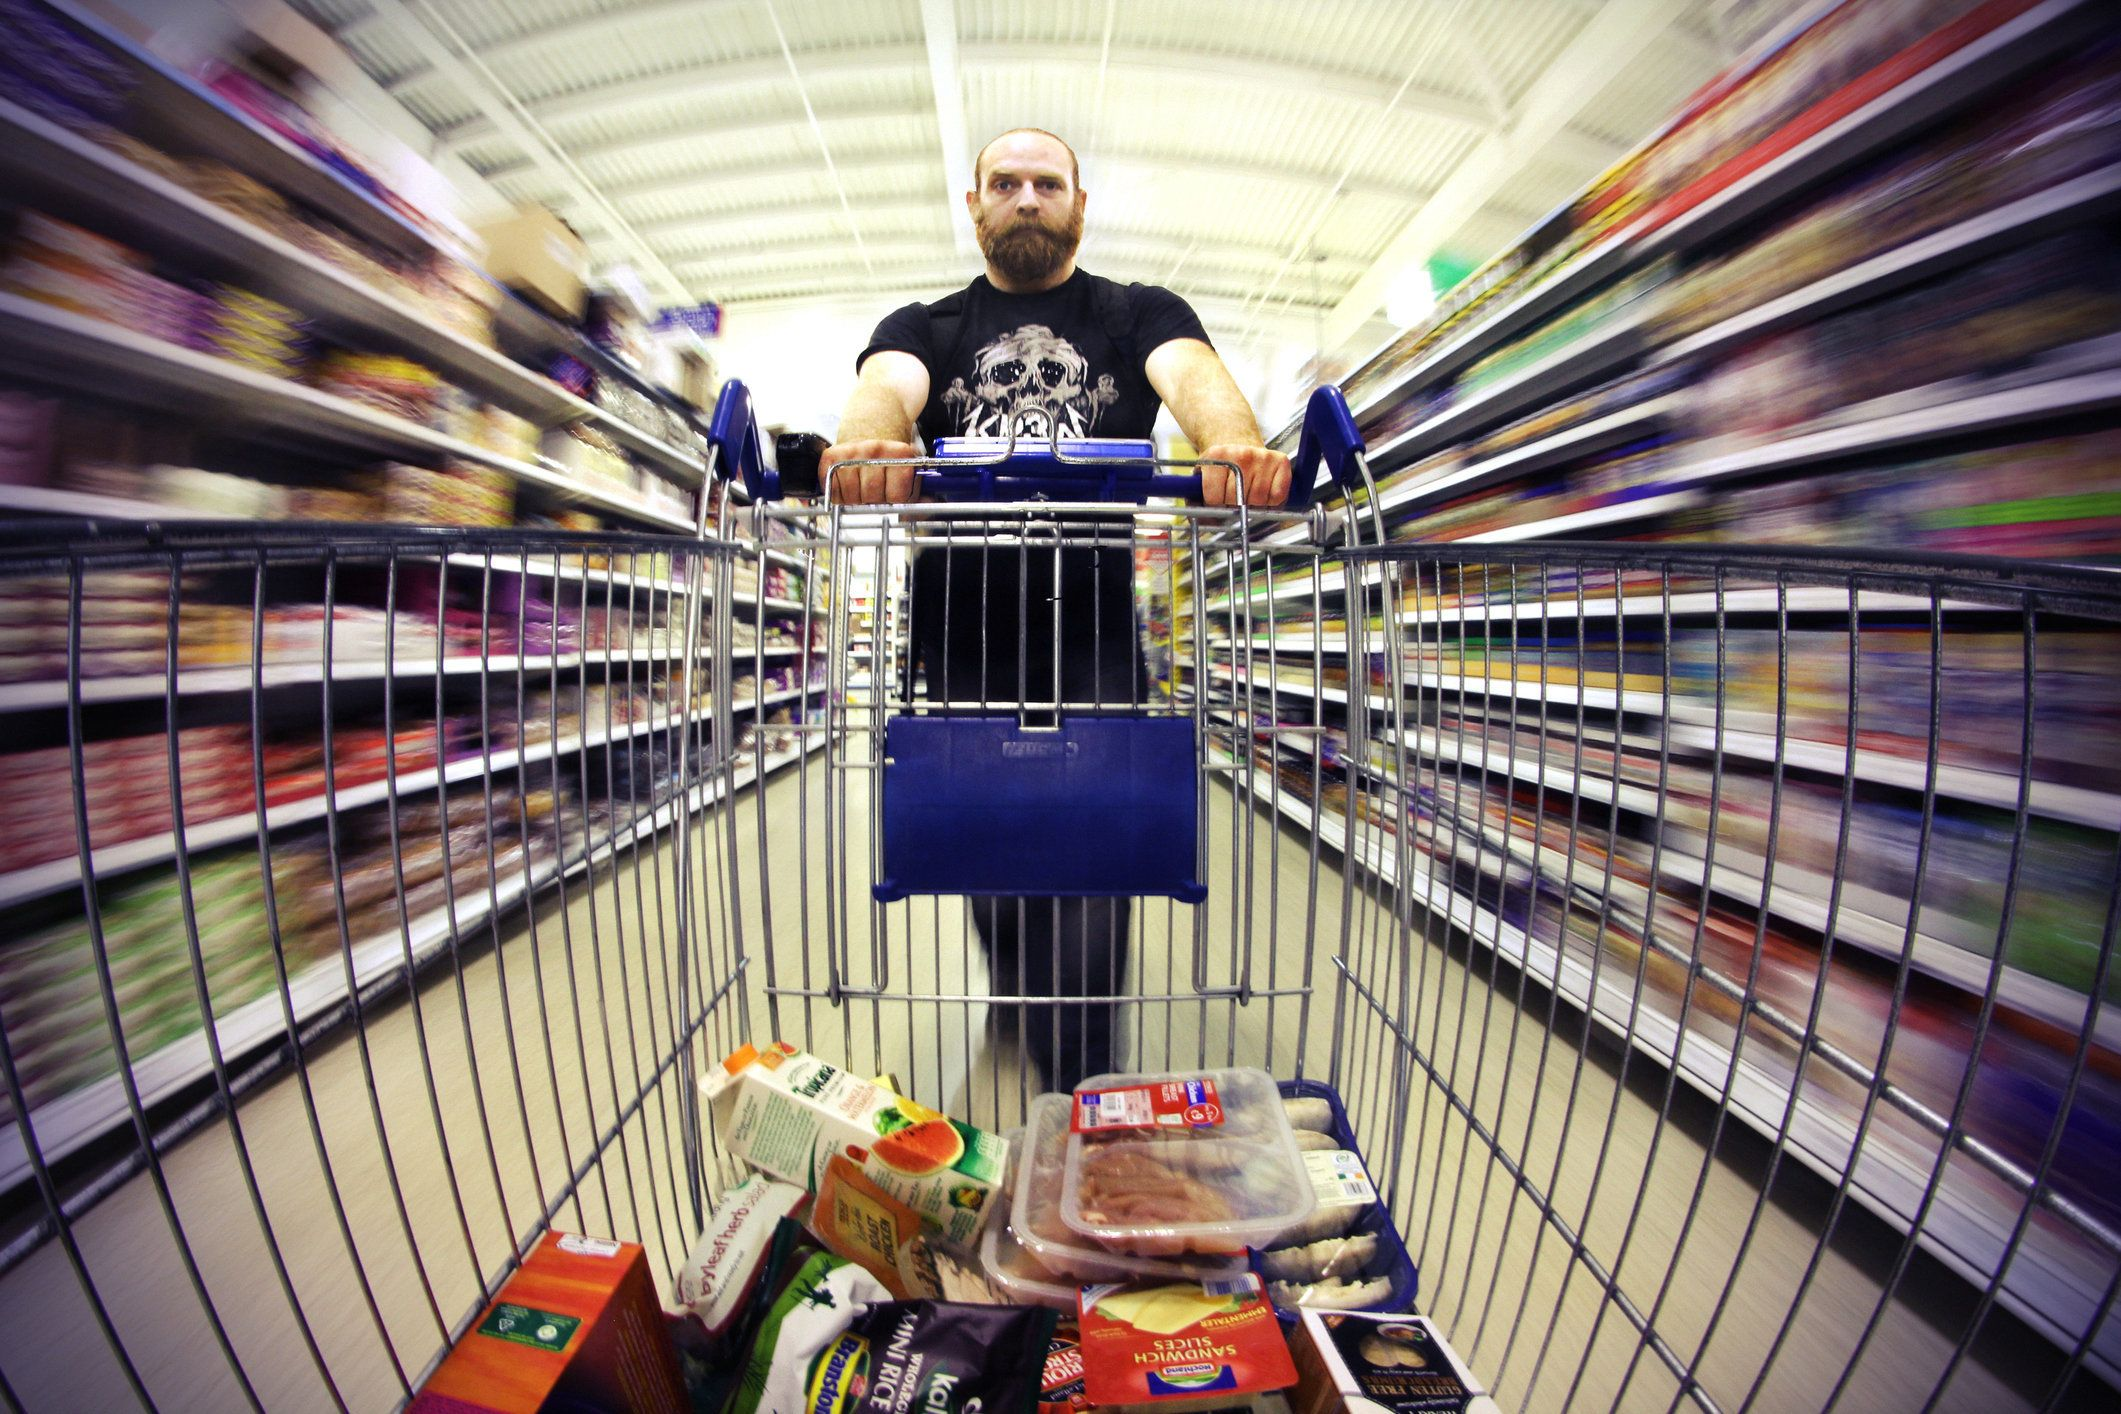 Man pushing shopping trolly full of food with motion blur.